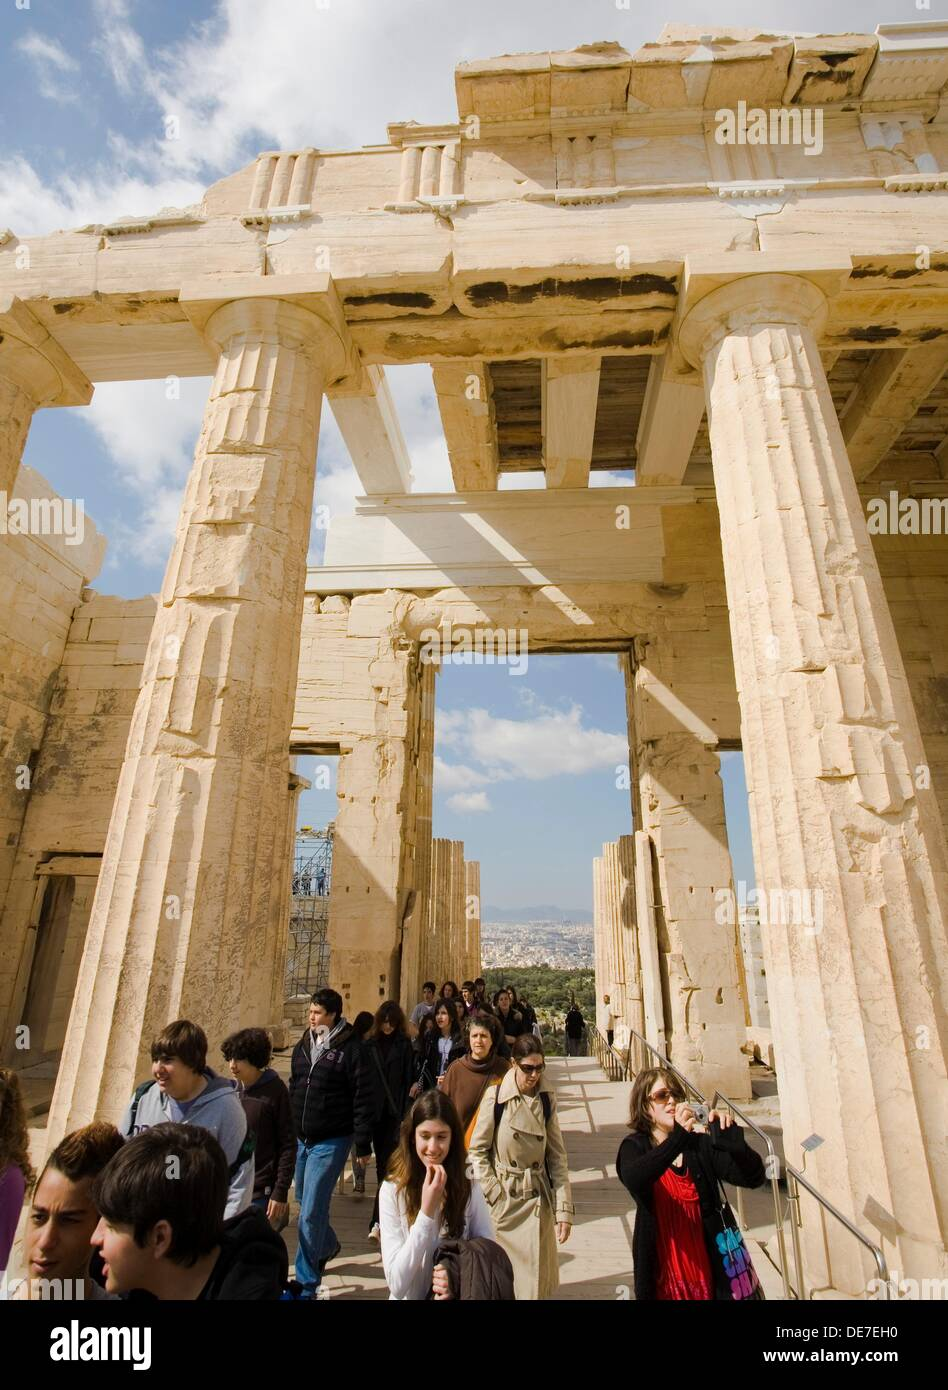 Propylaea, Acropolis of Athens, Greece Stock Photo